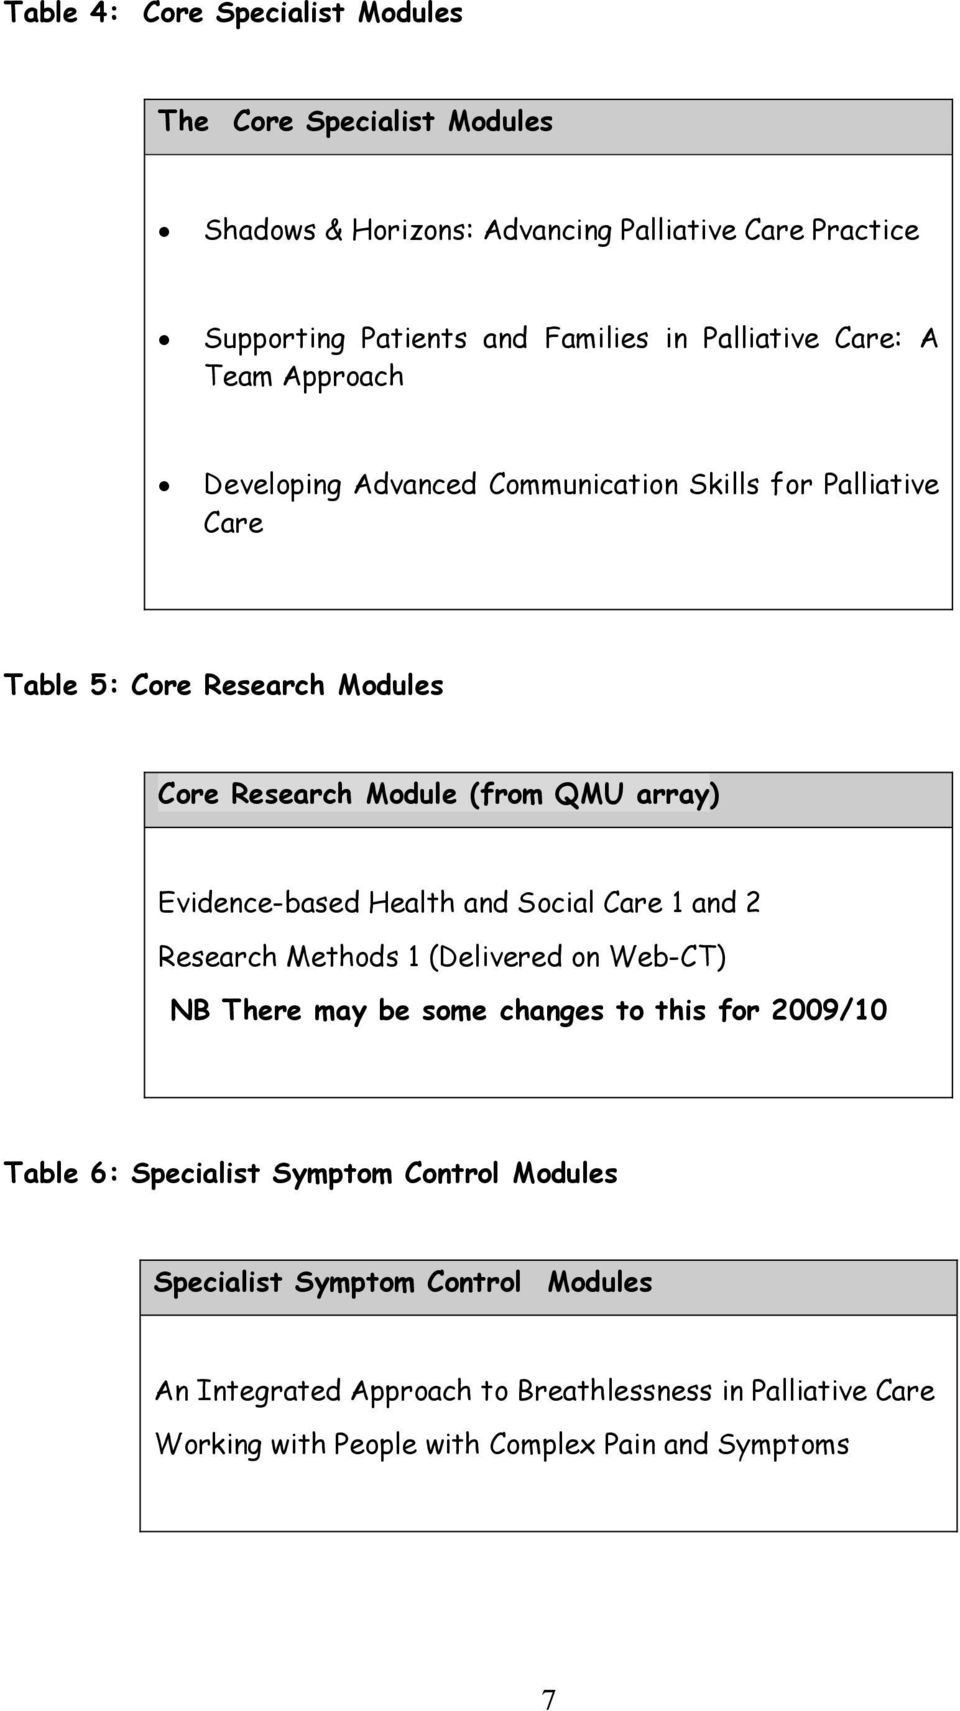 array) Evidence-based Health and Social Care 1 and 2 Research Methods 1 (Delivered on Web-CT) NB There may be some changes to this for 2009/10 Table 6: